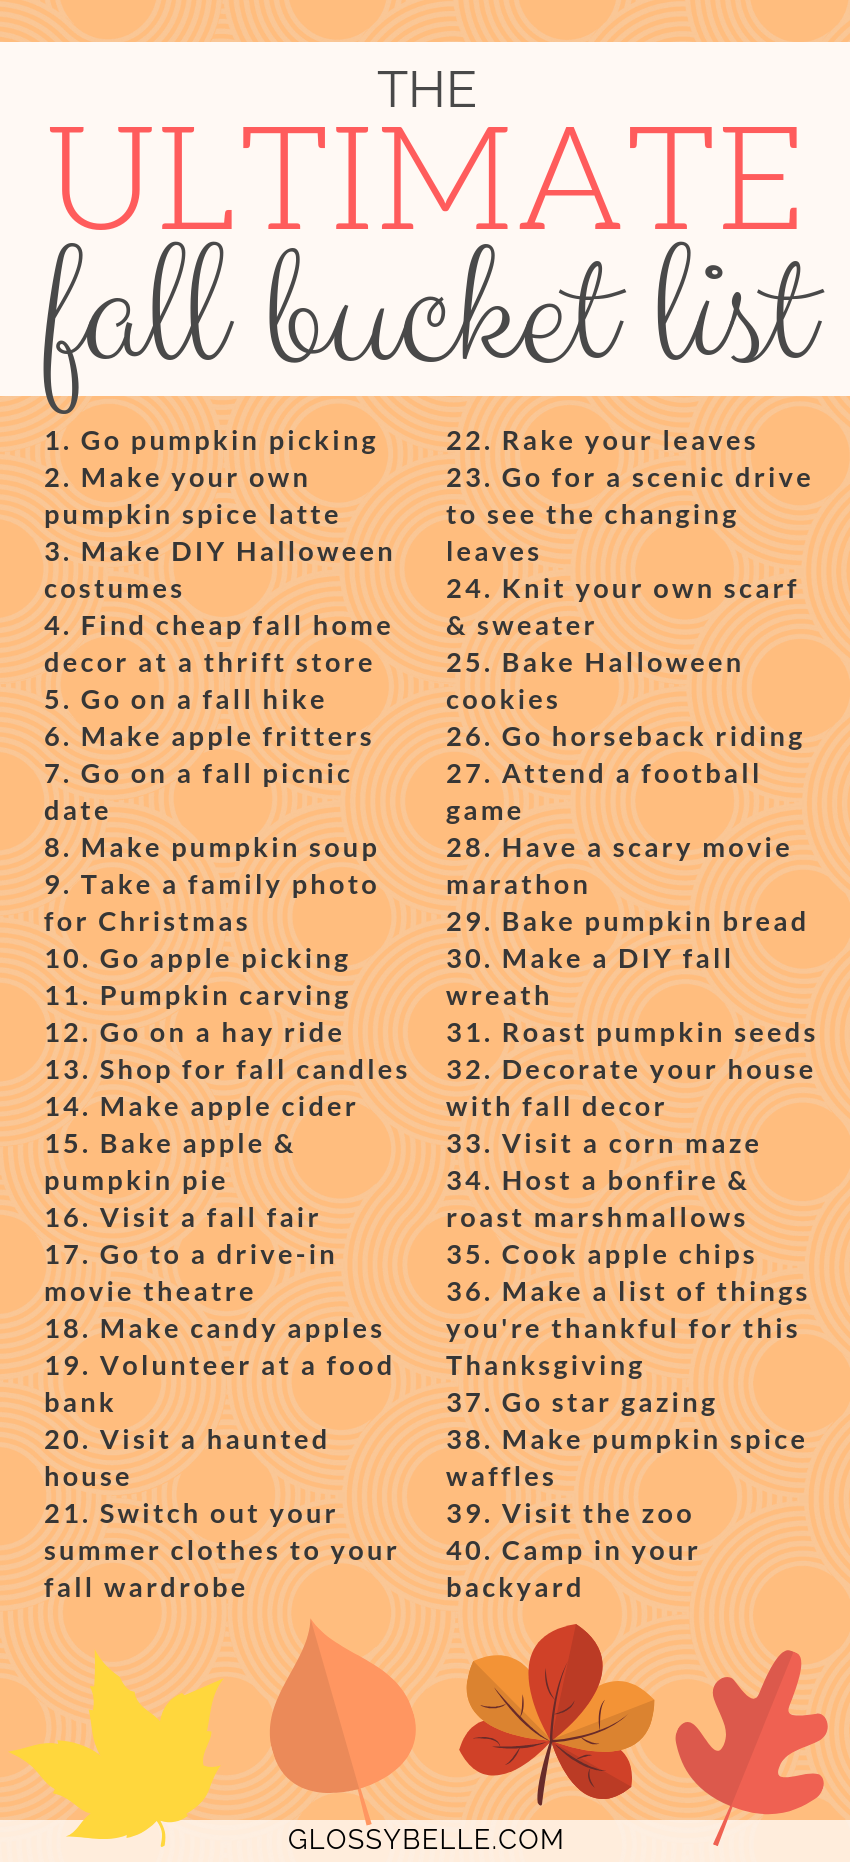 The Ultimate Fall Bucket List: 40 Fun Activities To Try This Autumn – Glossy Belle